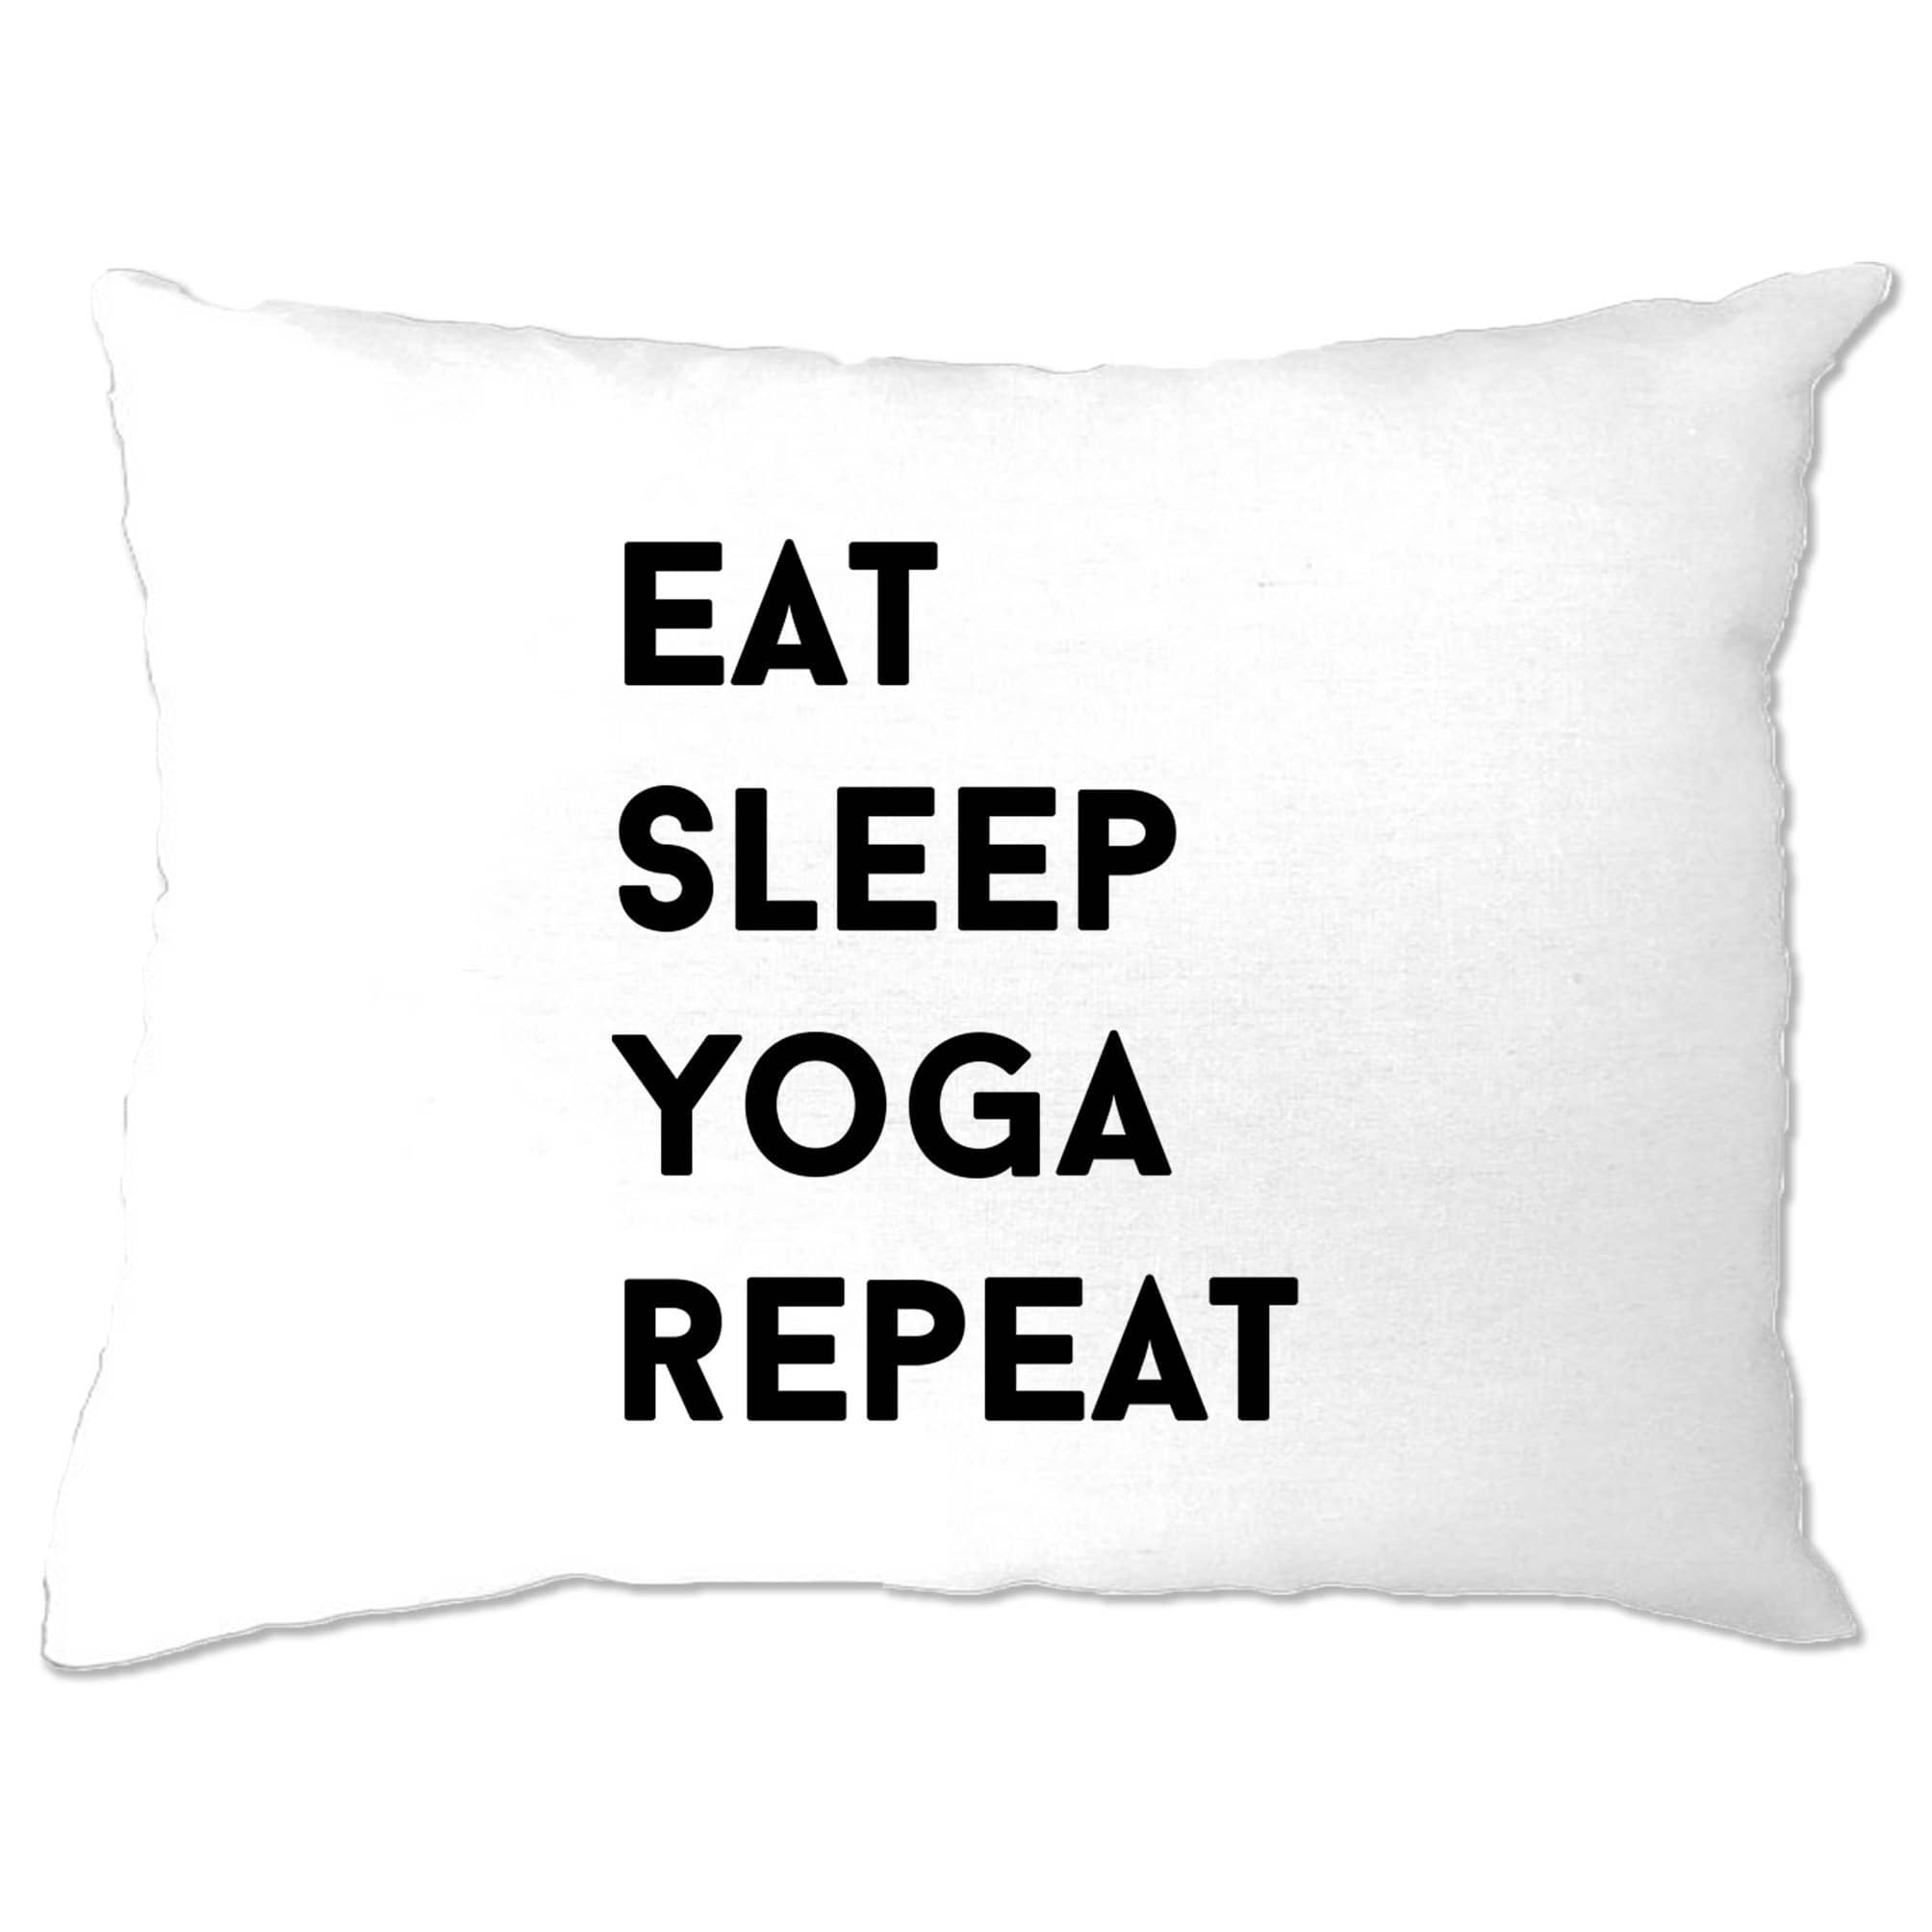 Gym Pillow Case Eat, Sleep, Yoga, Repeat Slogan